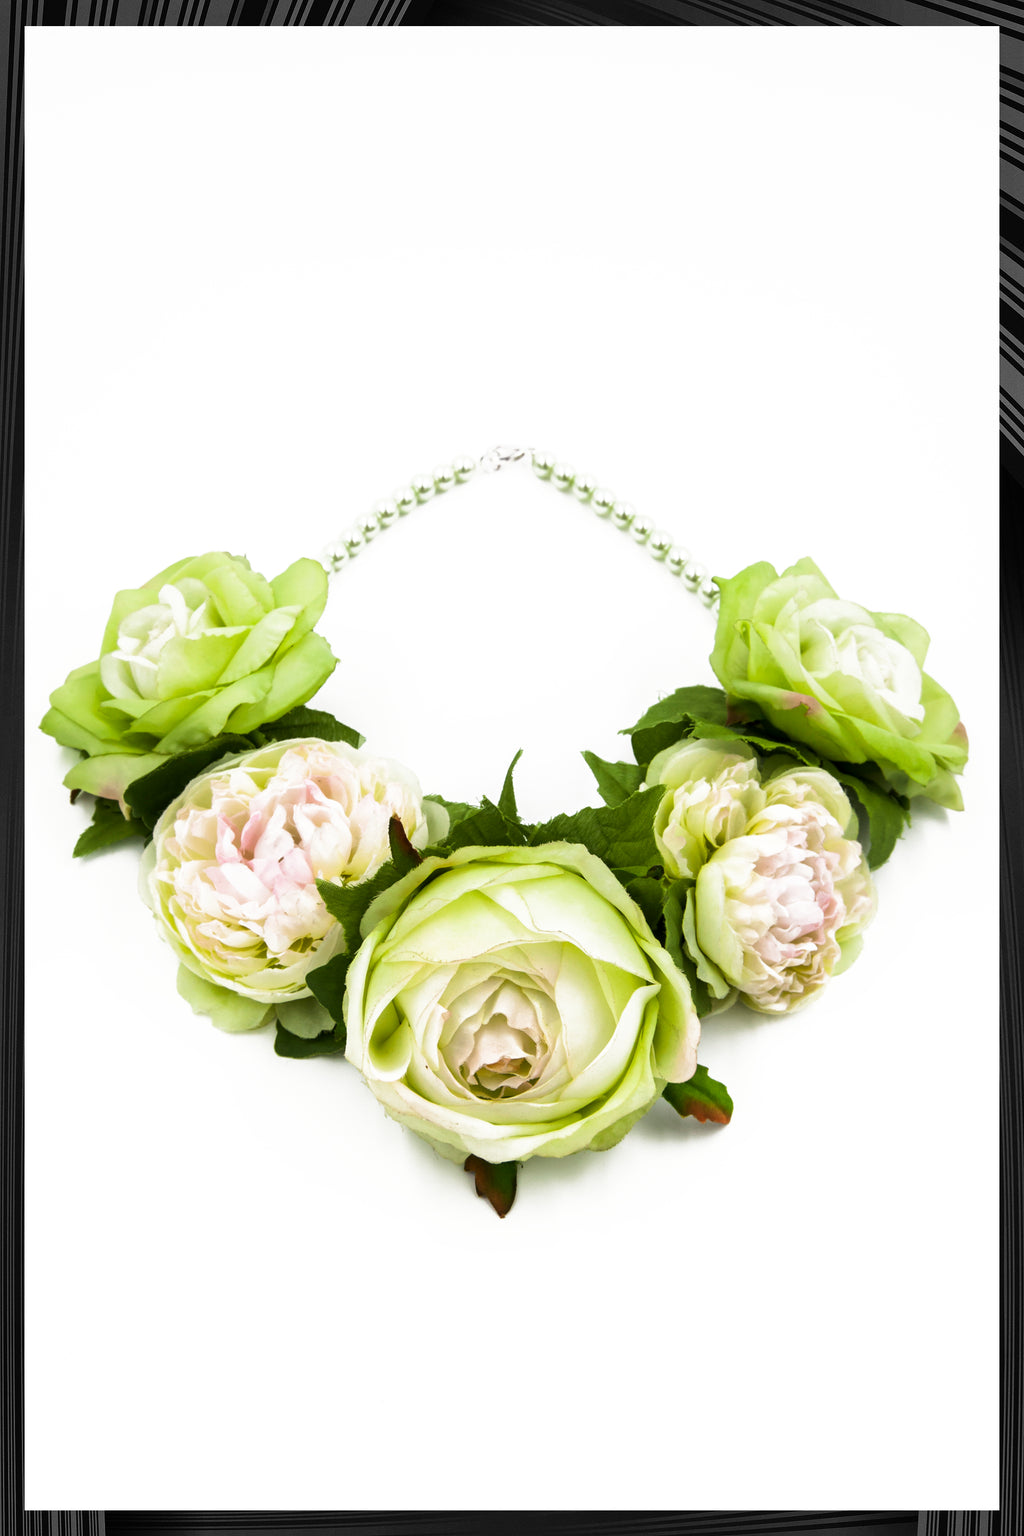 Green Flower Necklace | Free Delivery - Quick Shipping